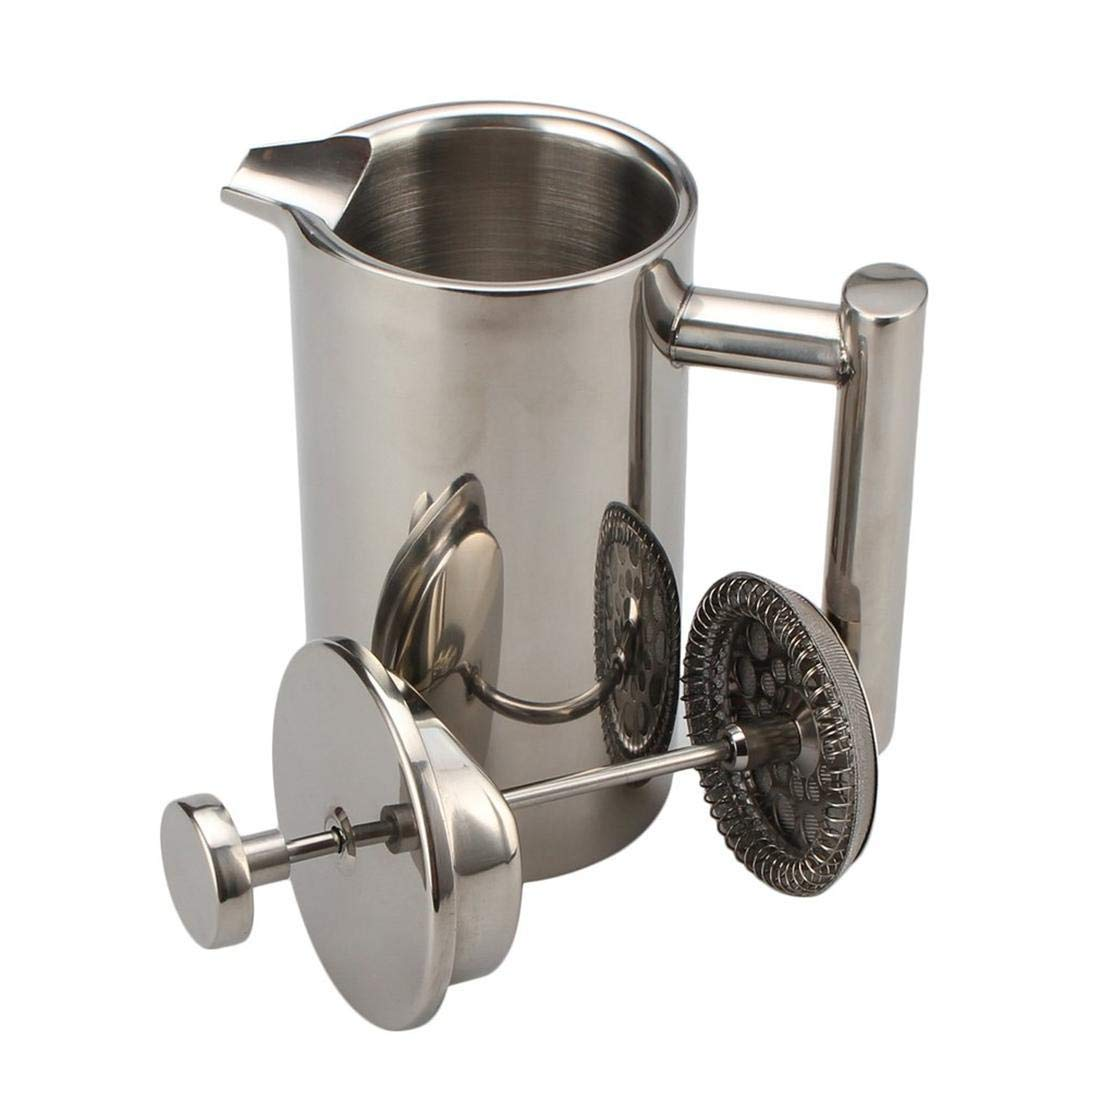 Seatour 1000ML Stainless Steel Double Wall Insulated French Press Coffee Tea Pot with Filter by Seatour (Image #3)